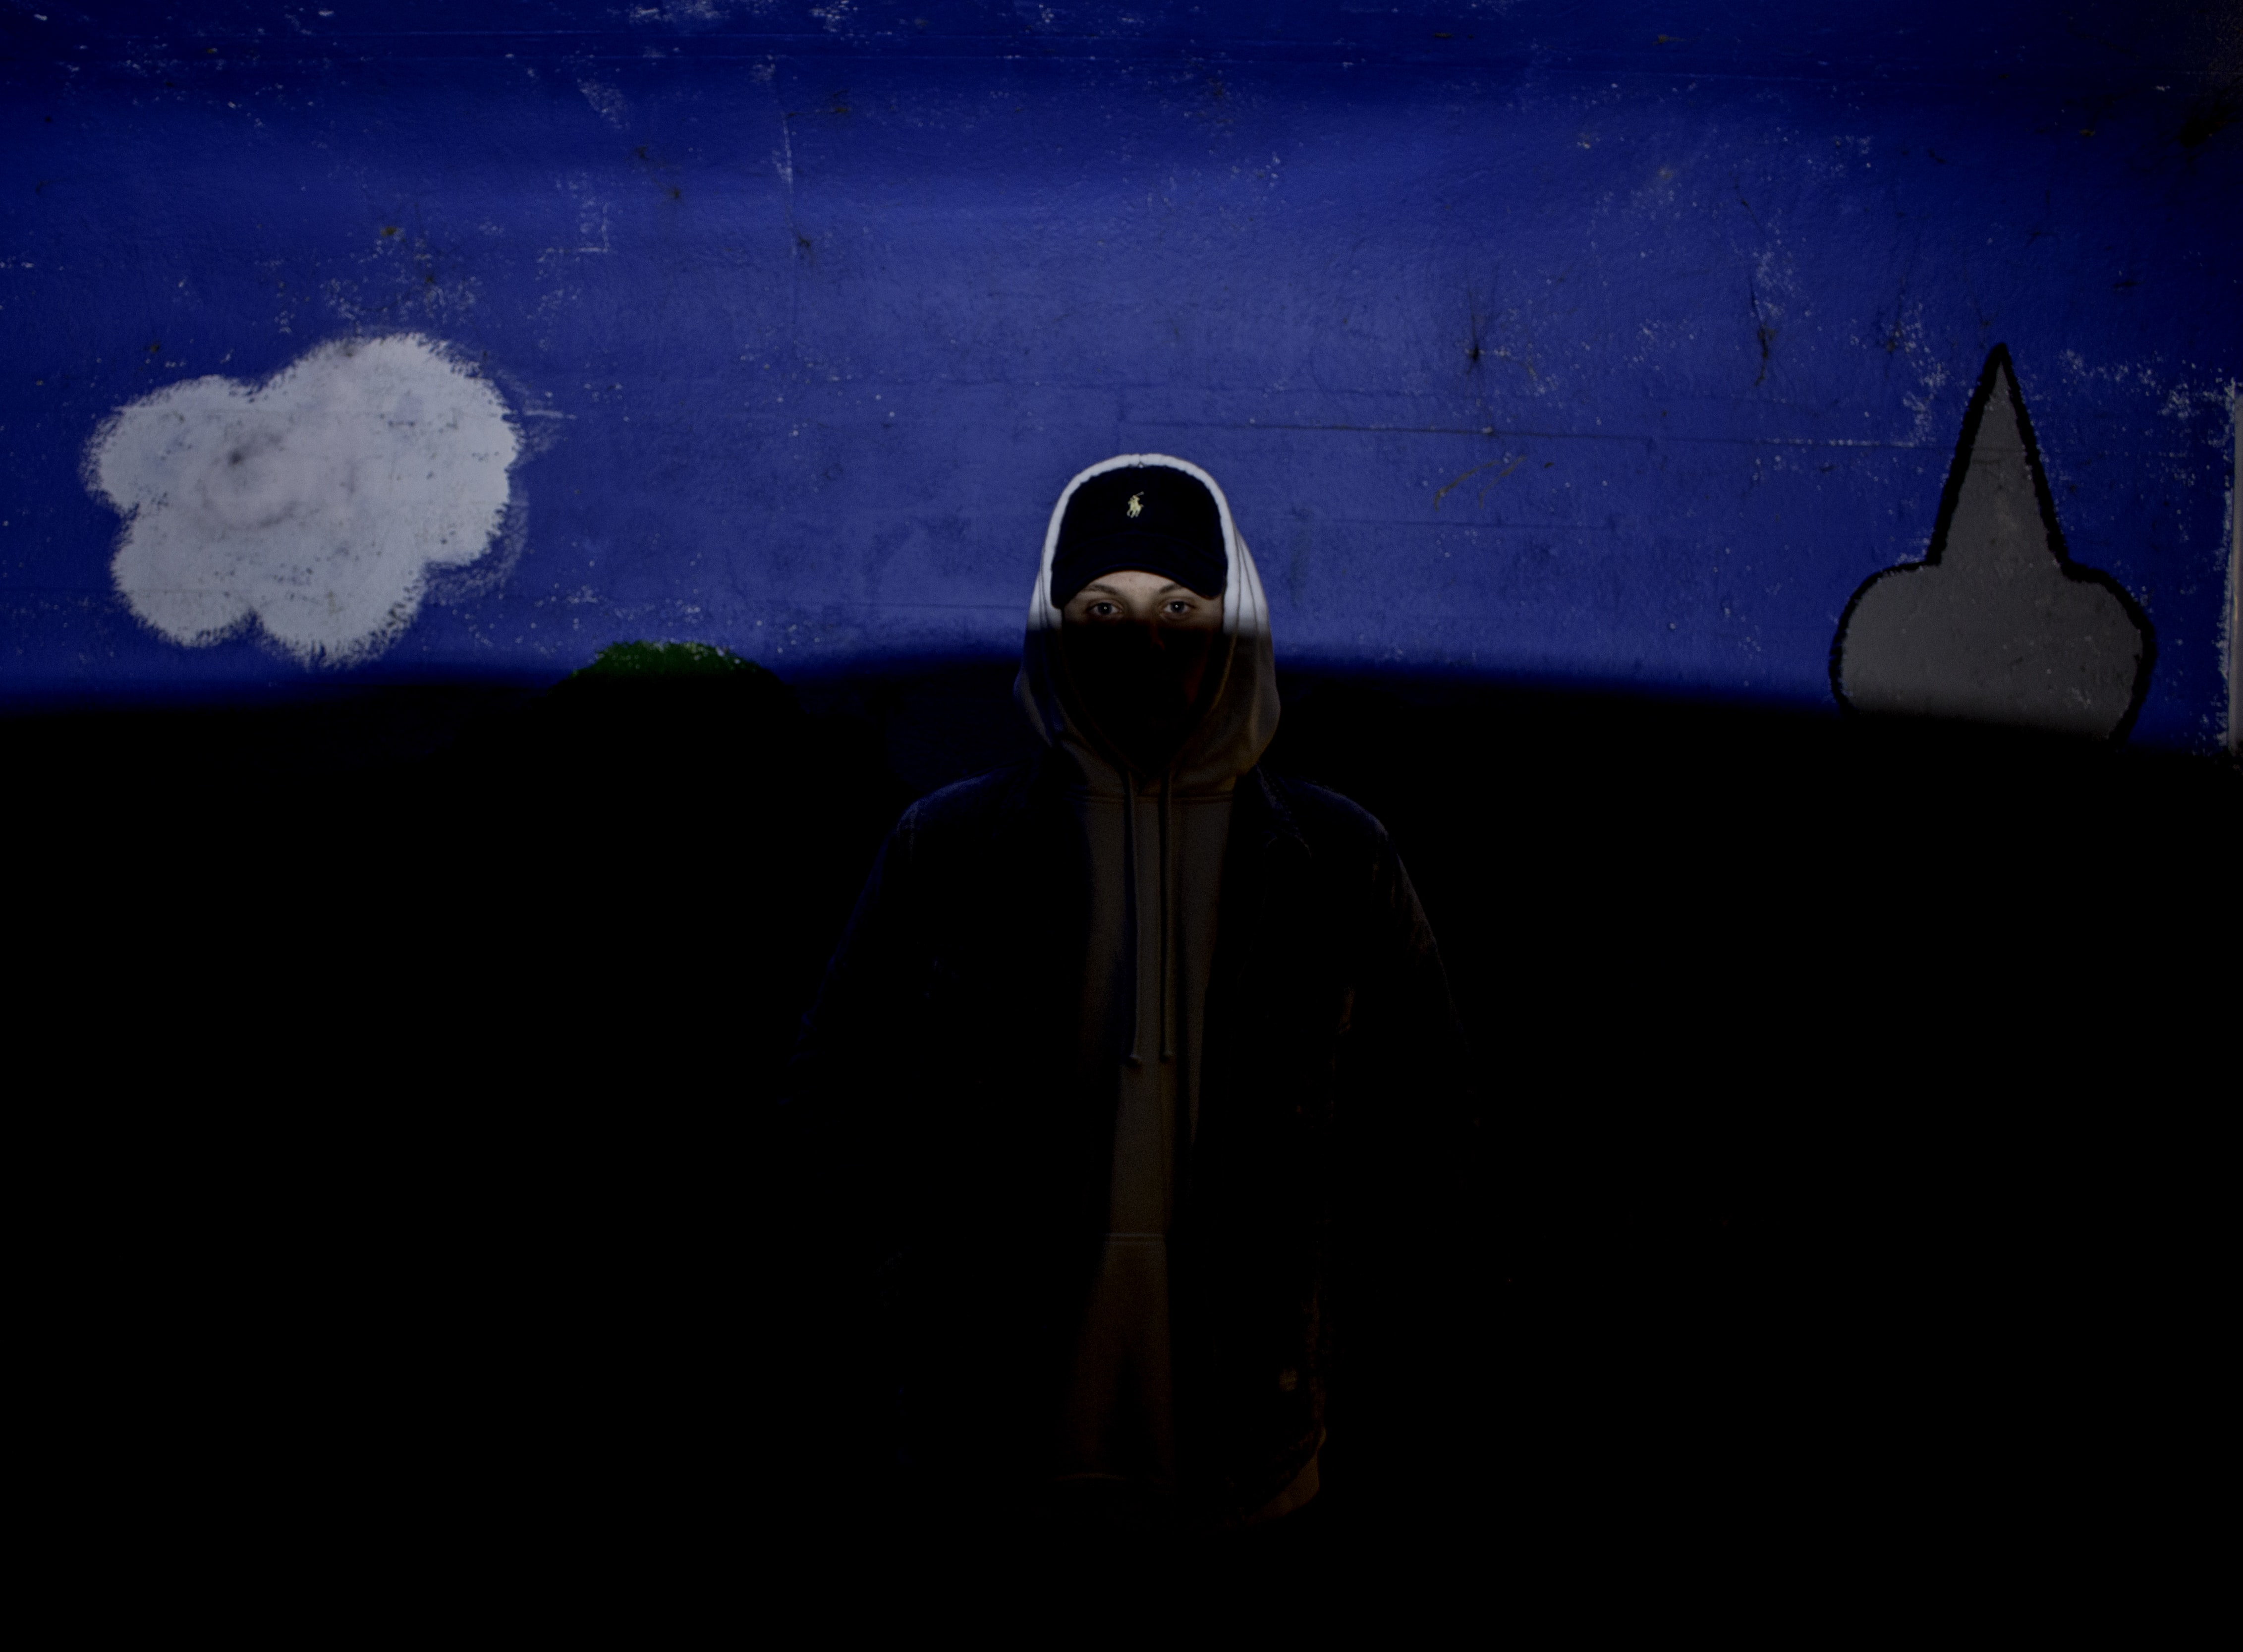 Person in a hoodie and hat standing in the shadows with only their face lit